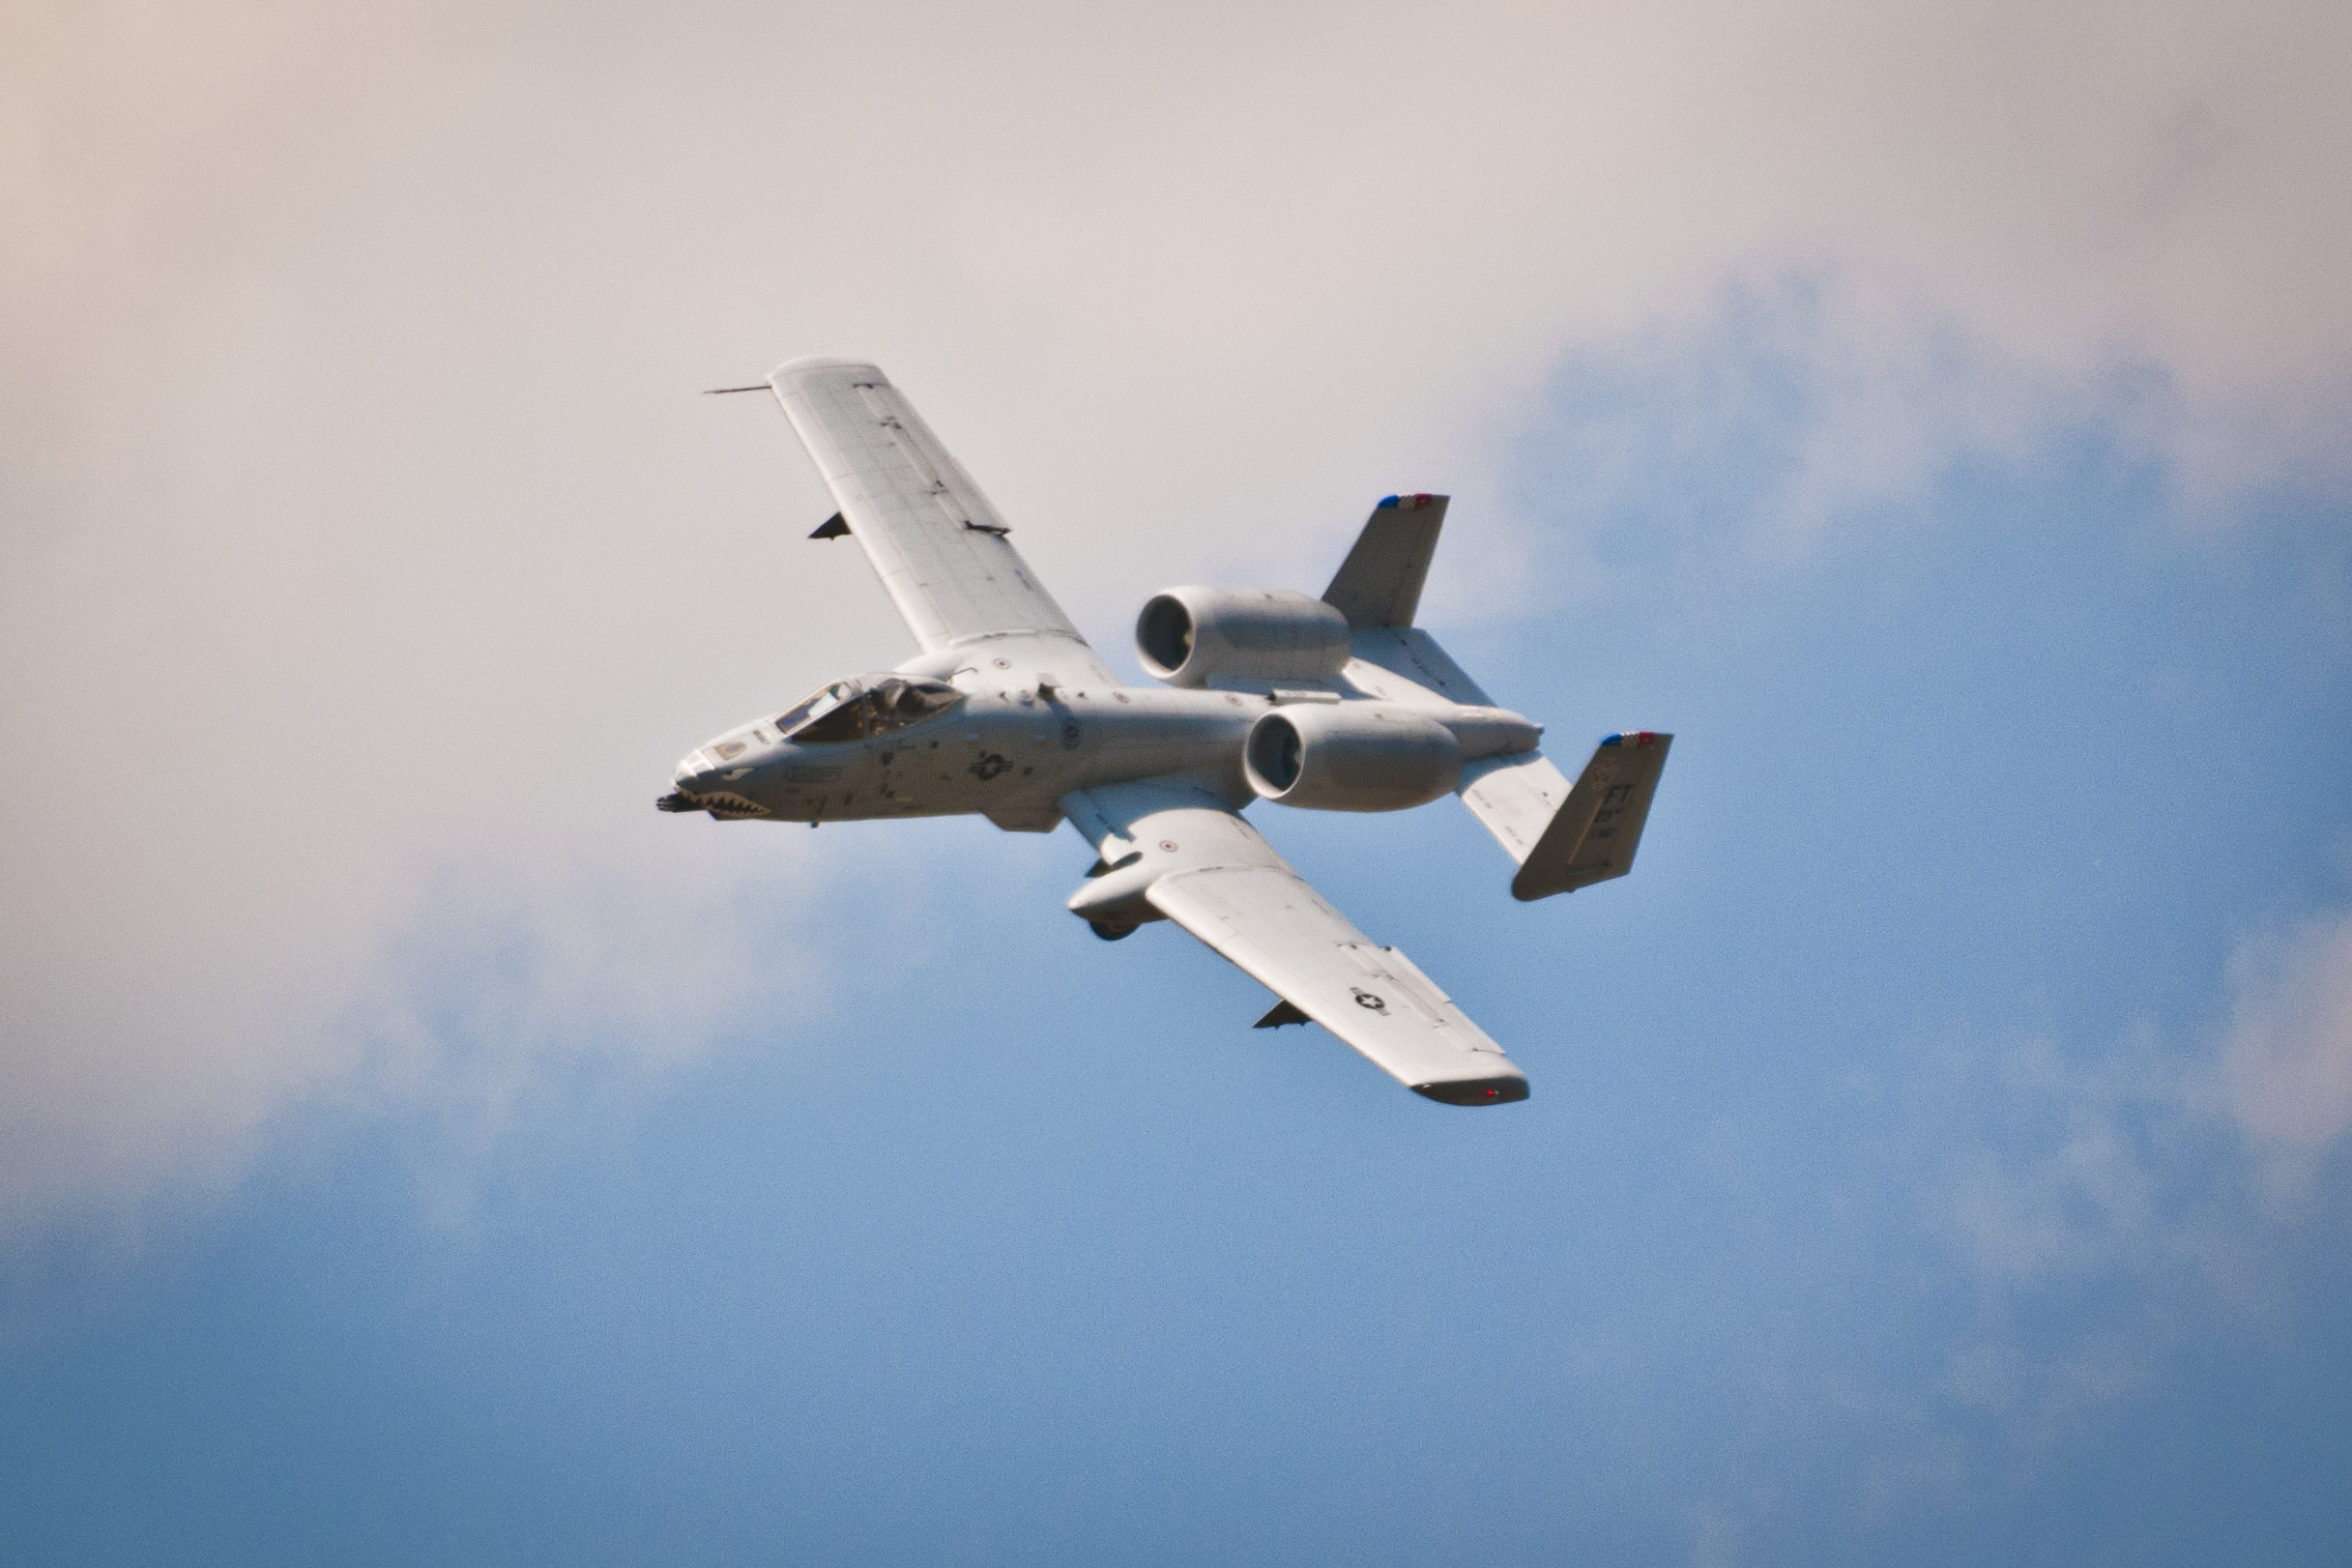 This is the A-10 that flew around while we were trying to eat lunch